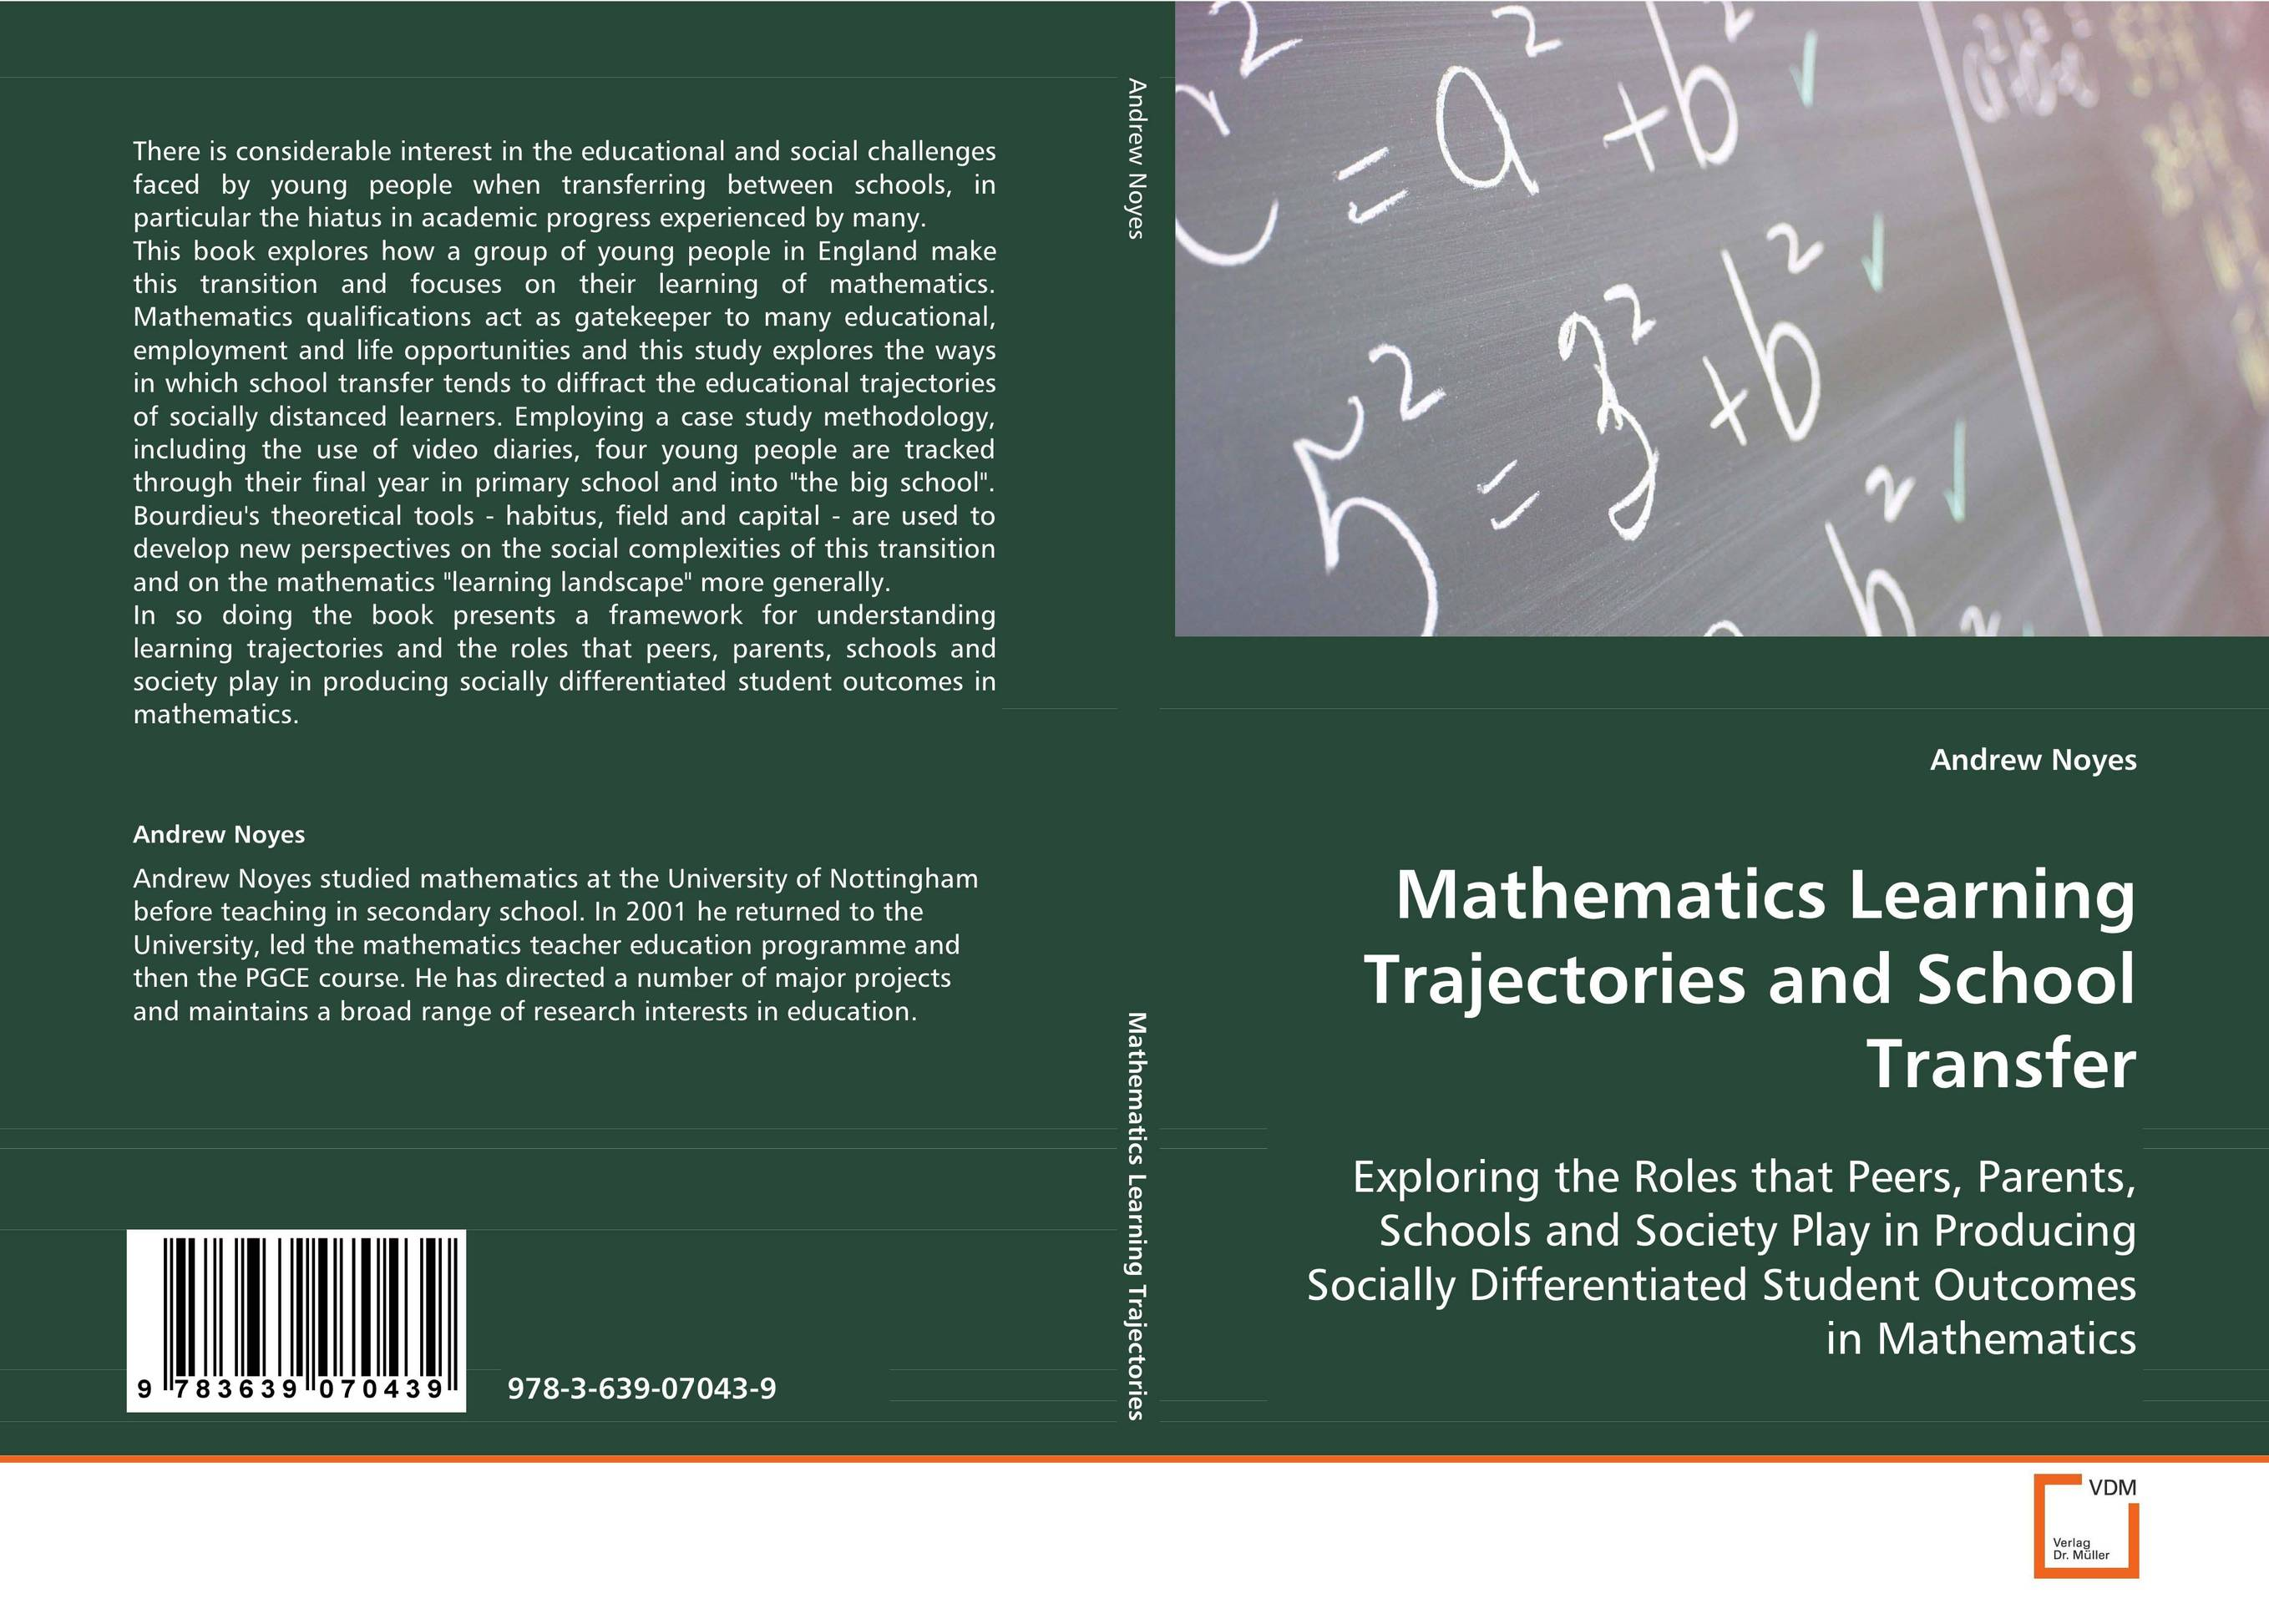 Mathematics Learning Trajectories and School Transfer